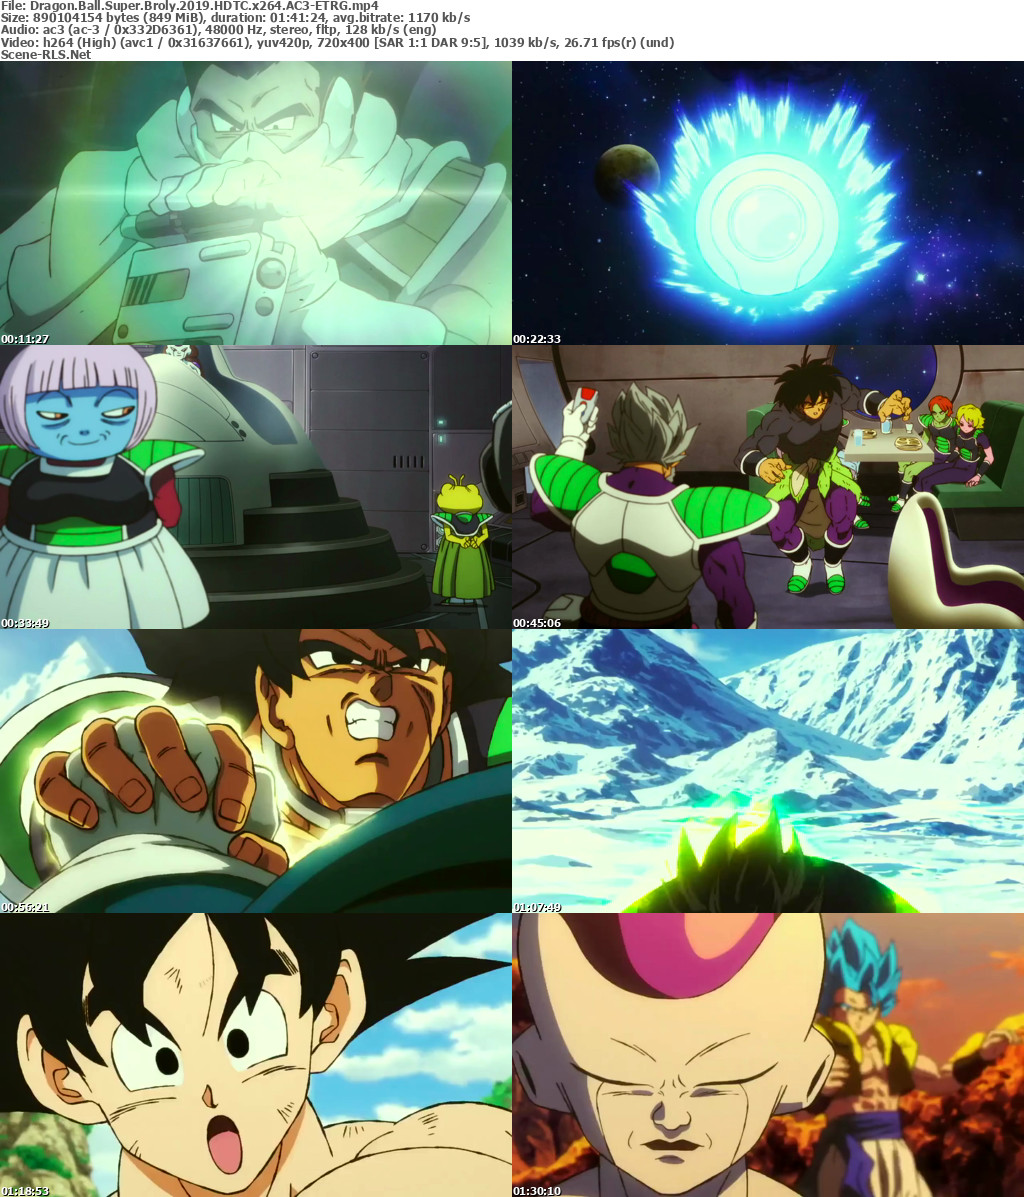 Dragon Ball Broly Full Movie: Dragon Ball Super: Broly (2018) HDRip Full Dual Audio